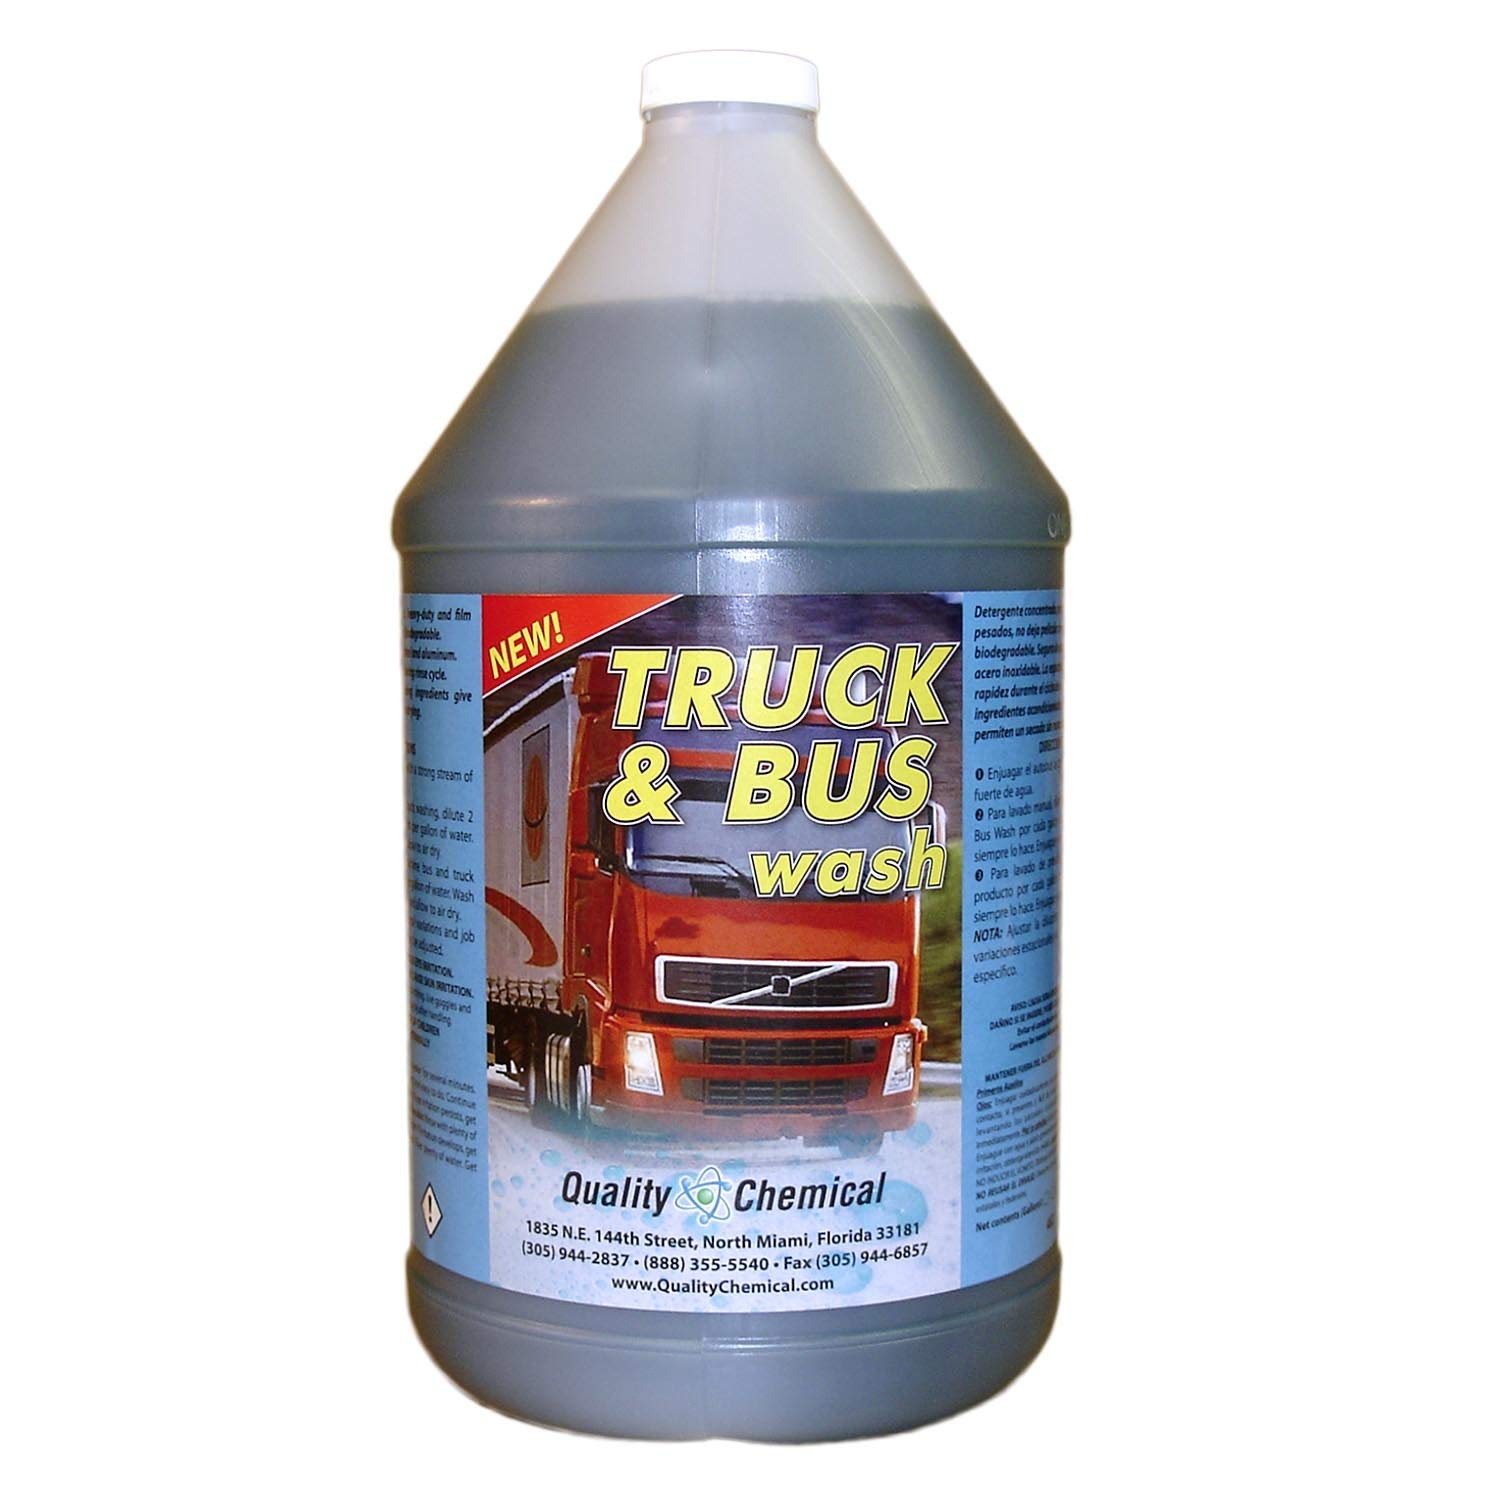 Truck & Bus Wash: Heavy-duty industrial strength, super-foaming, grease-cutting cleaner and degreaser-1 gallon (128 oz.) by Quality Chemical